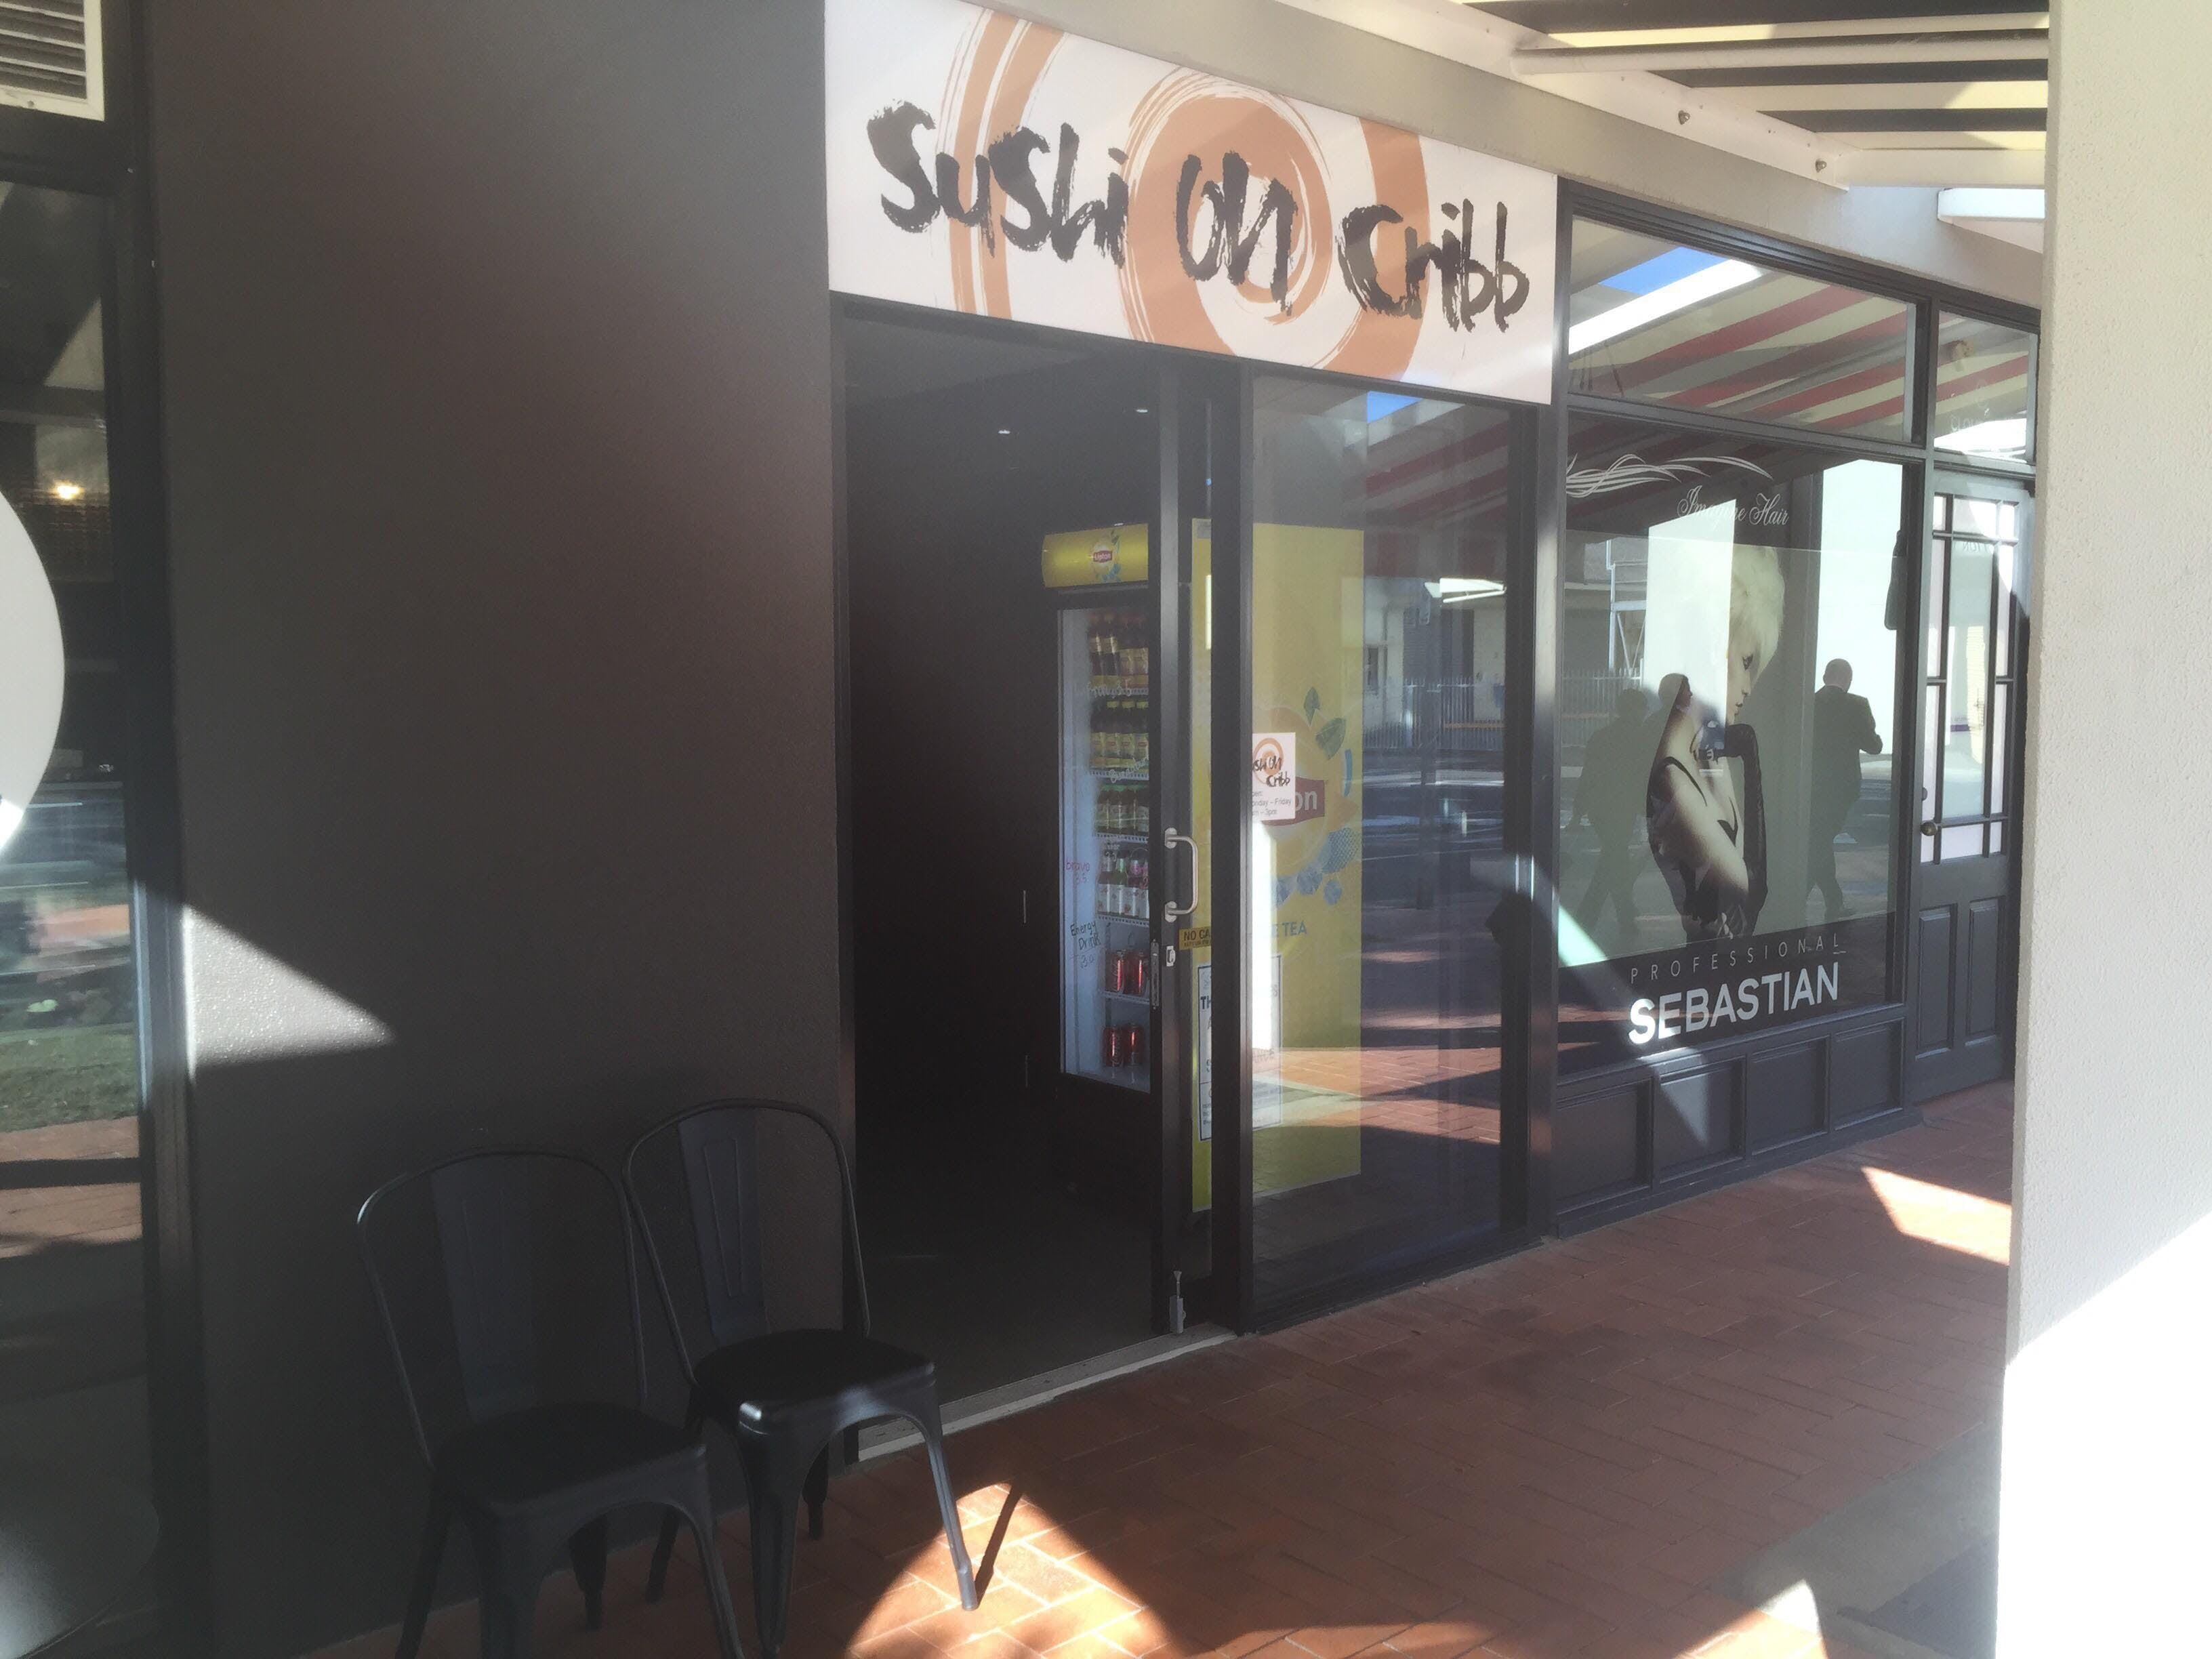 Sushi on Cribb - Broome Tourism